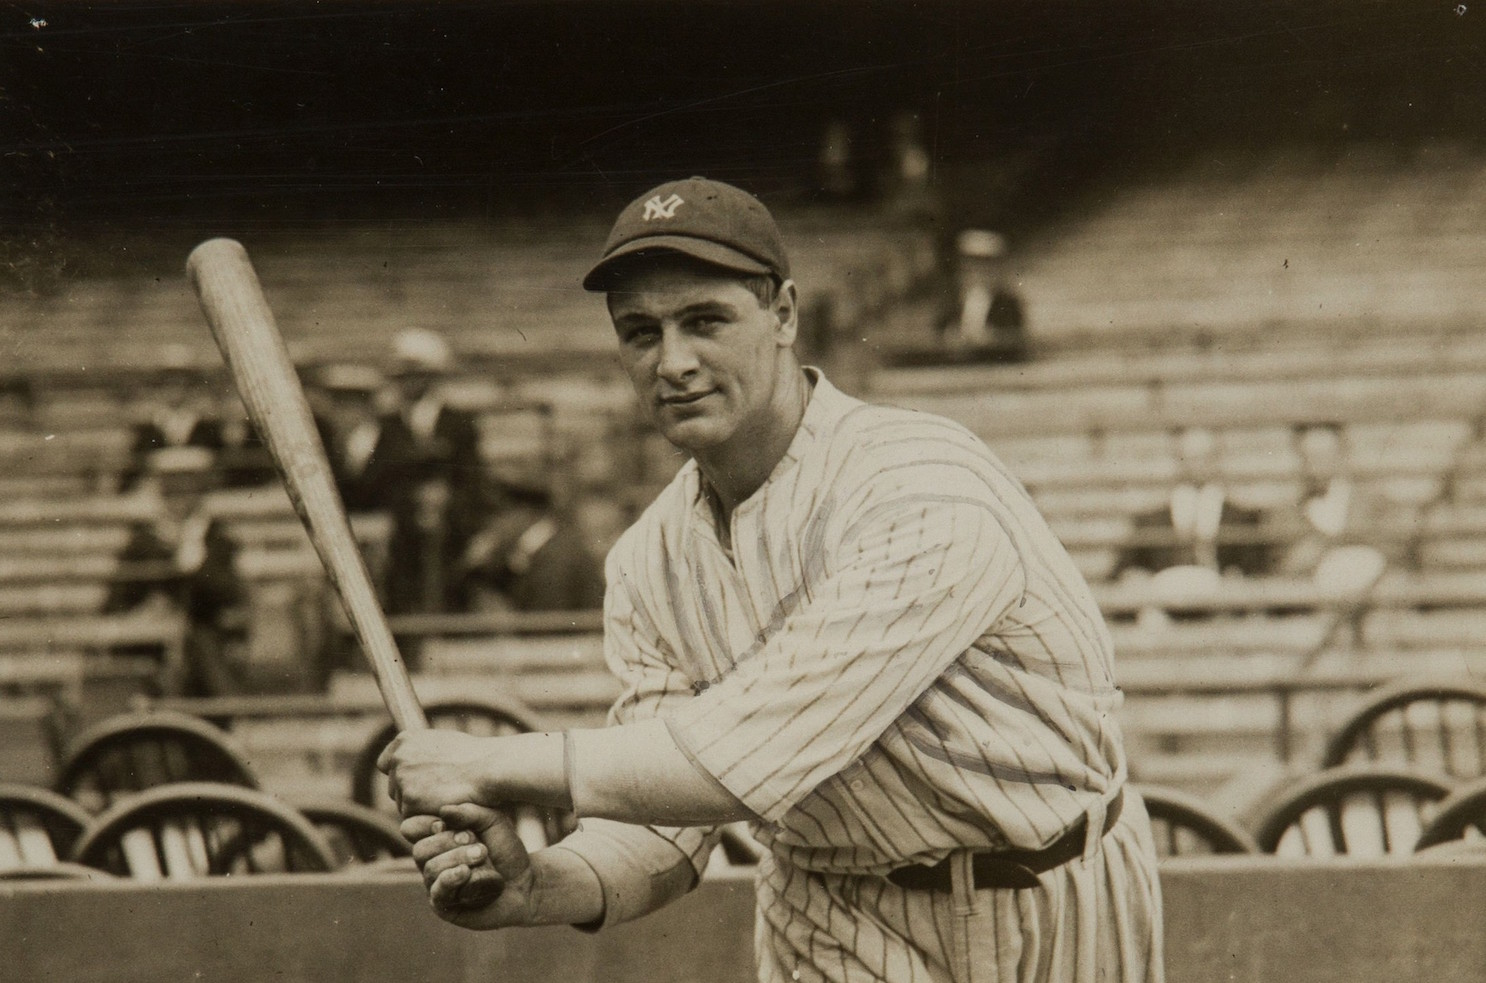 Lou Gehrig by Pacific & Atlantic Photos, Inc (Heritage Auctions) [Public domain], via Wikimedia Commons